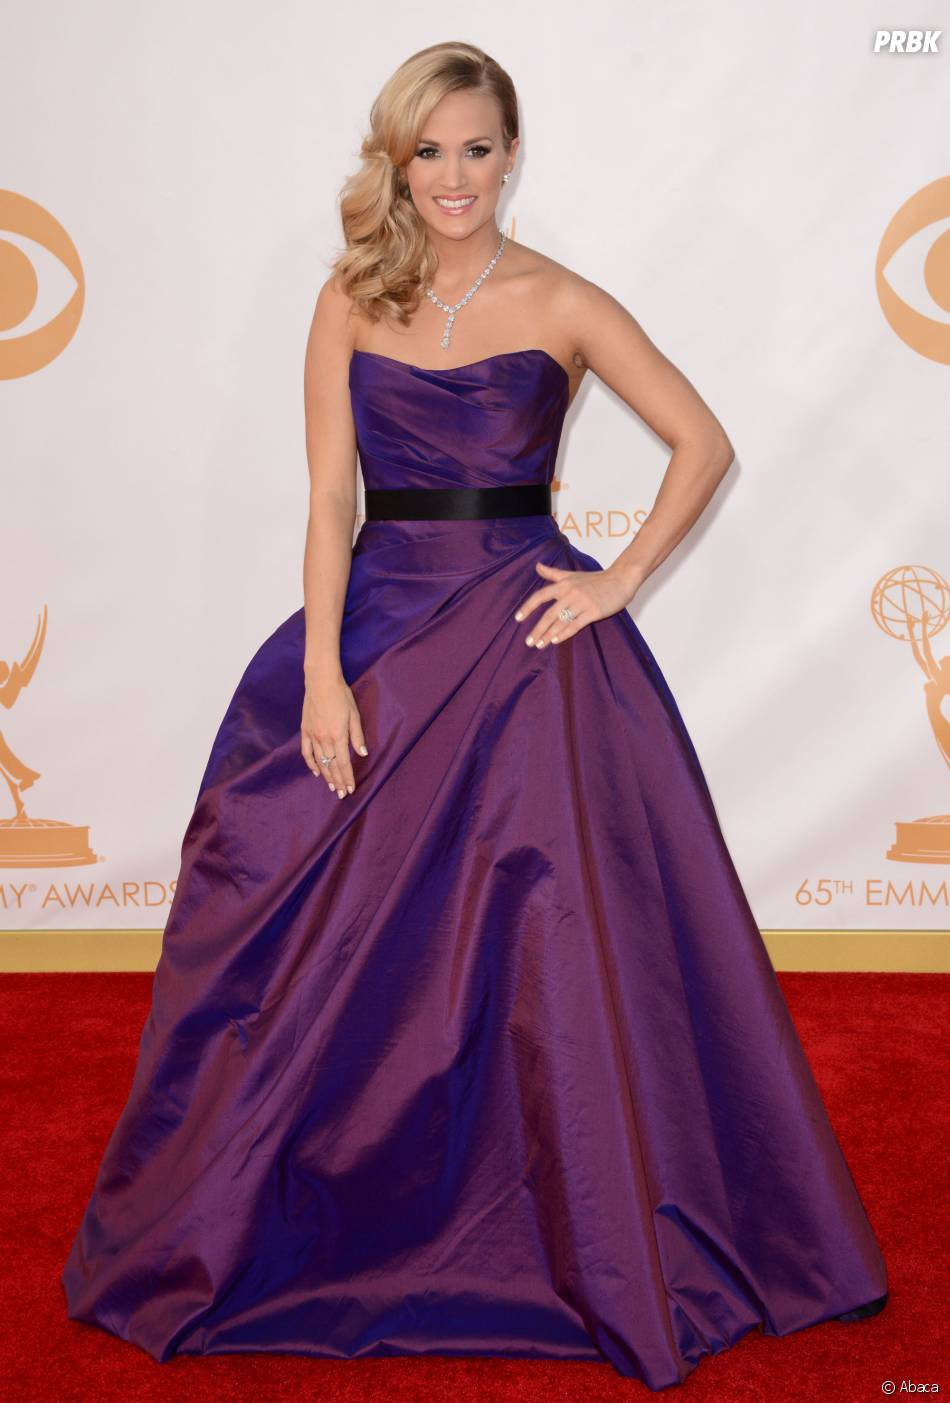 Carrie Underwood aux Emmy Awards 2013 le 22 septembre 2013 à Los Angeles